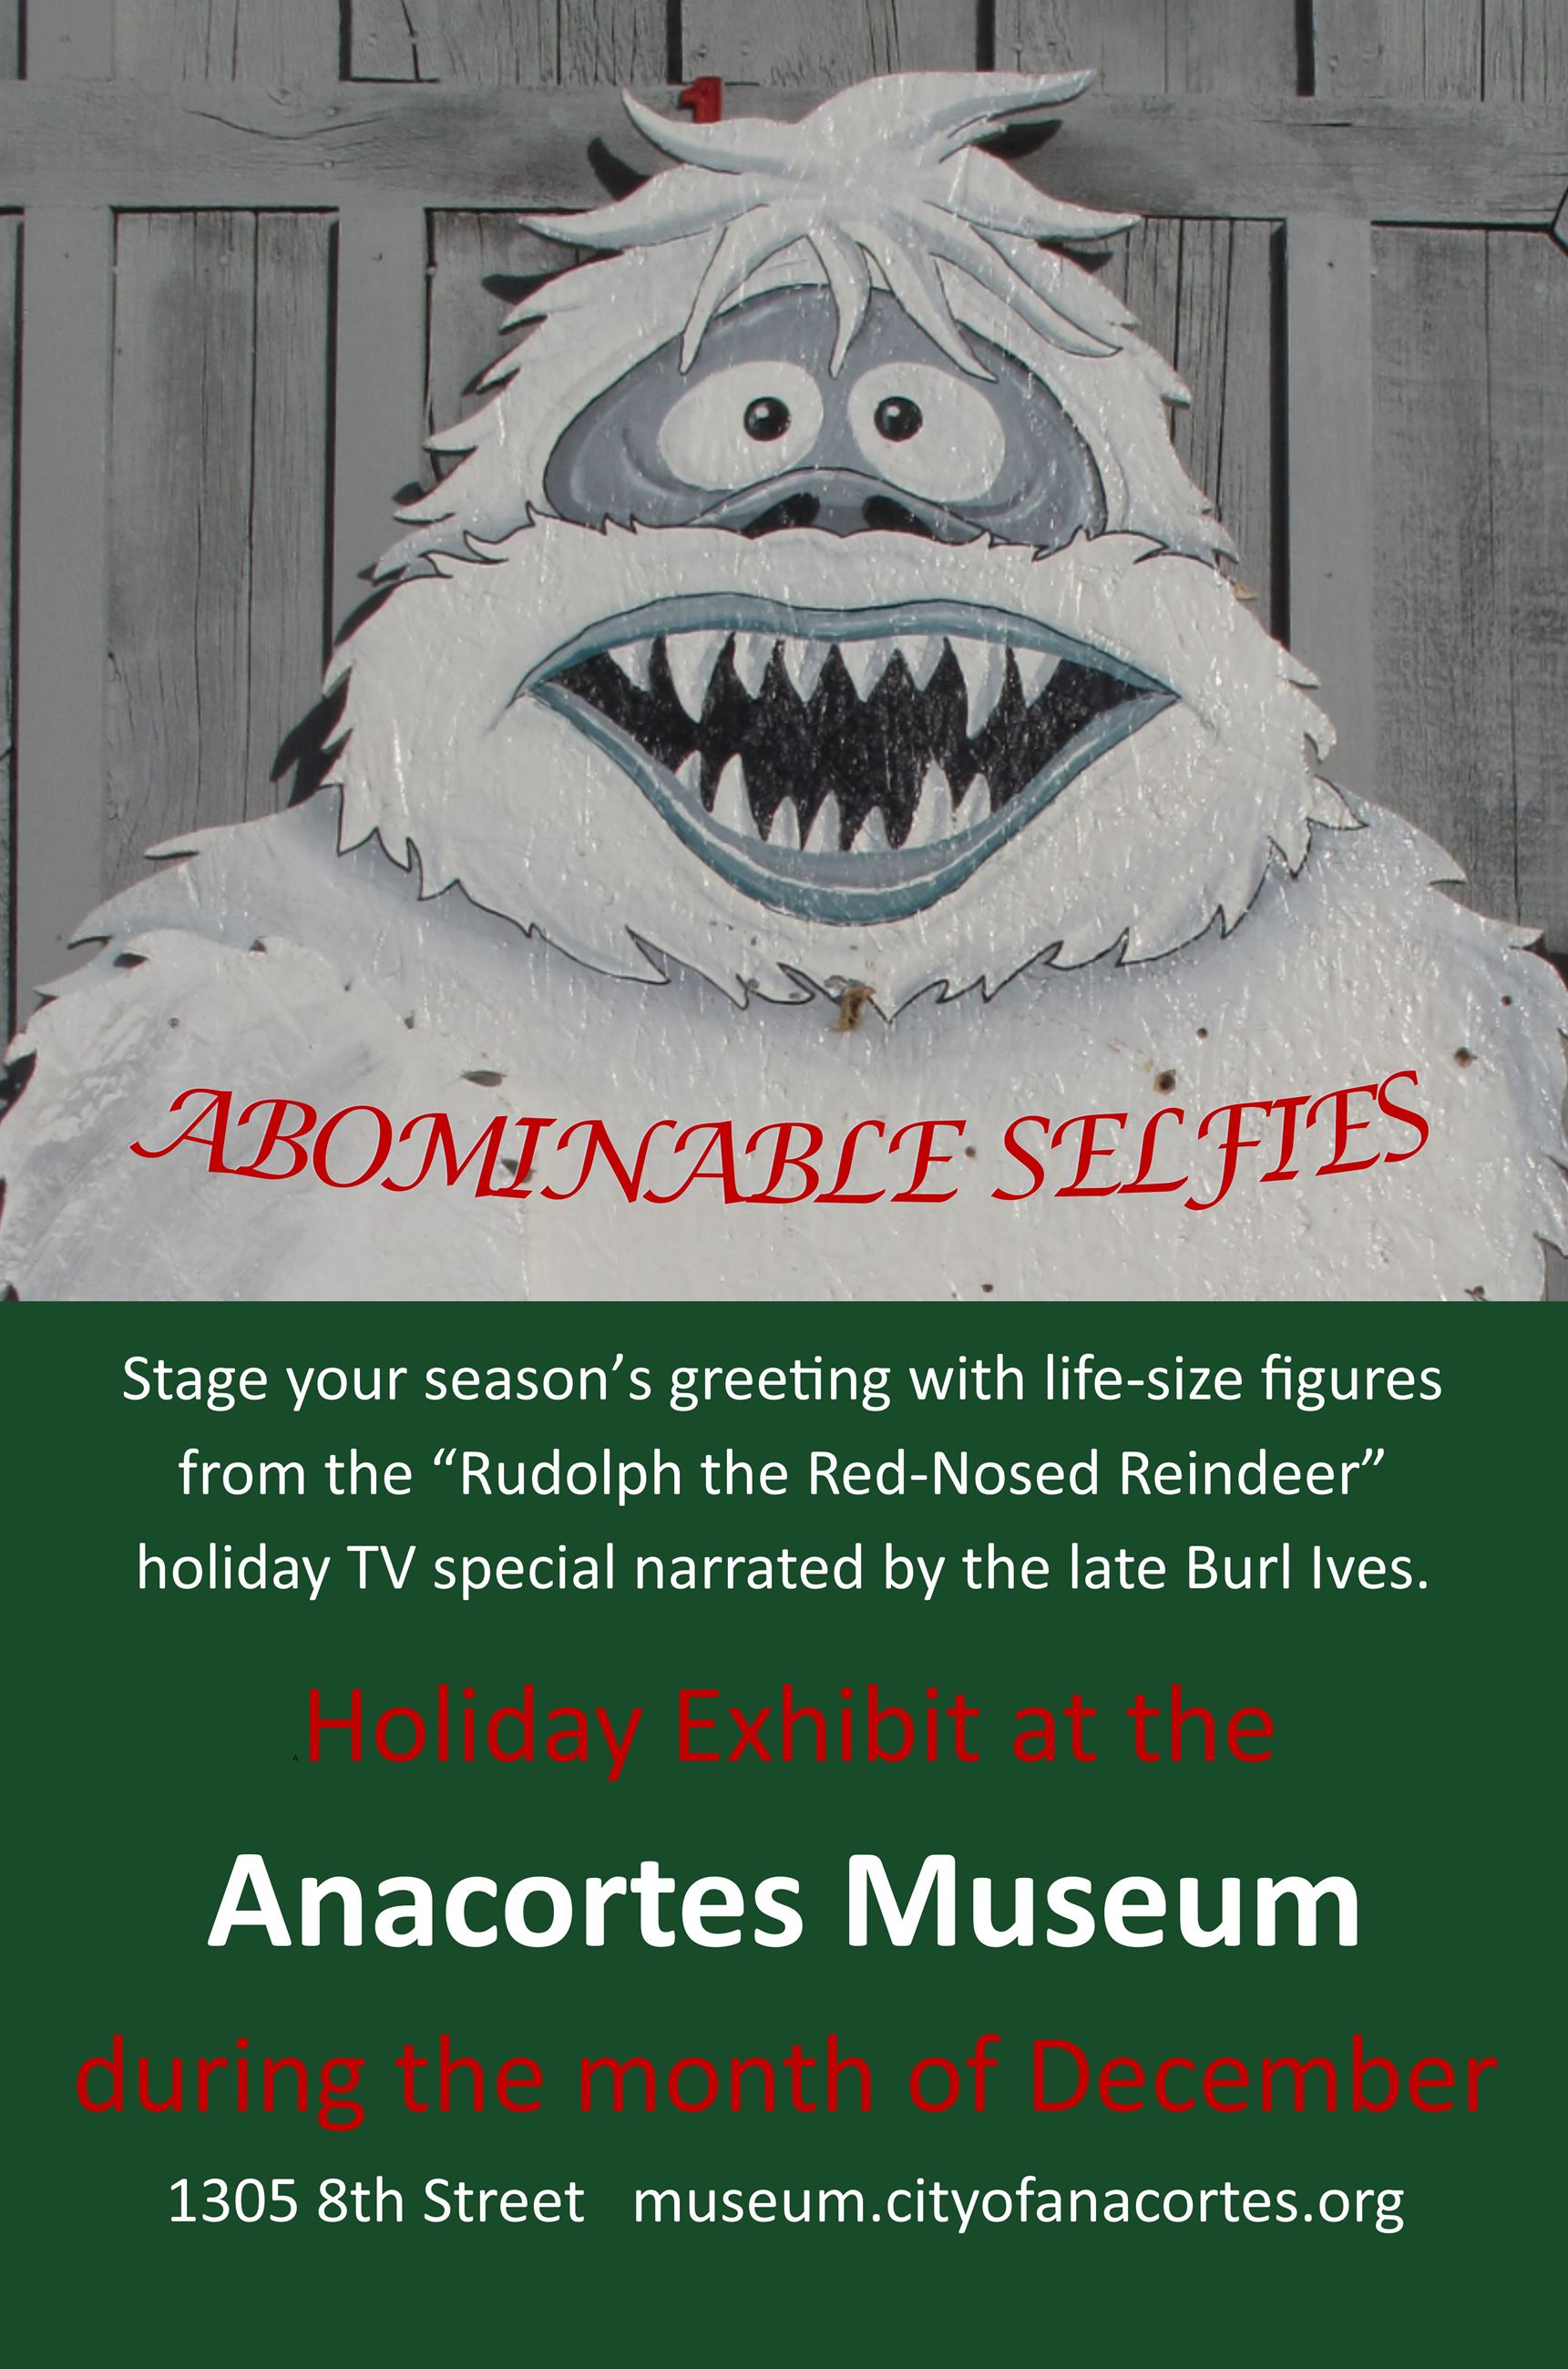 Abominable Selfies at Anacortes Museum